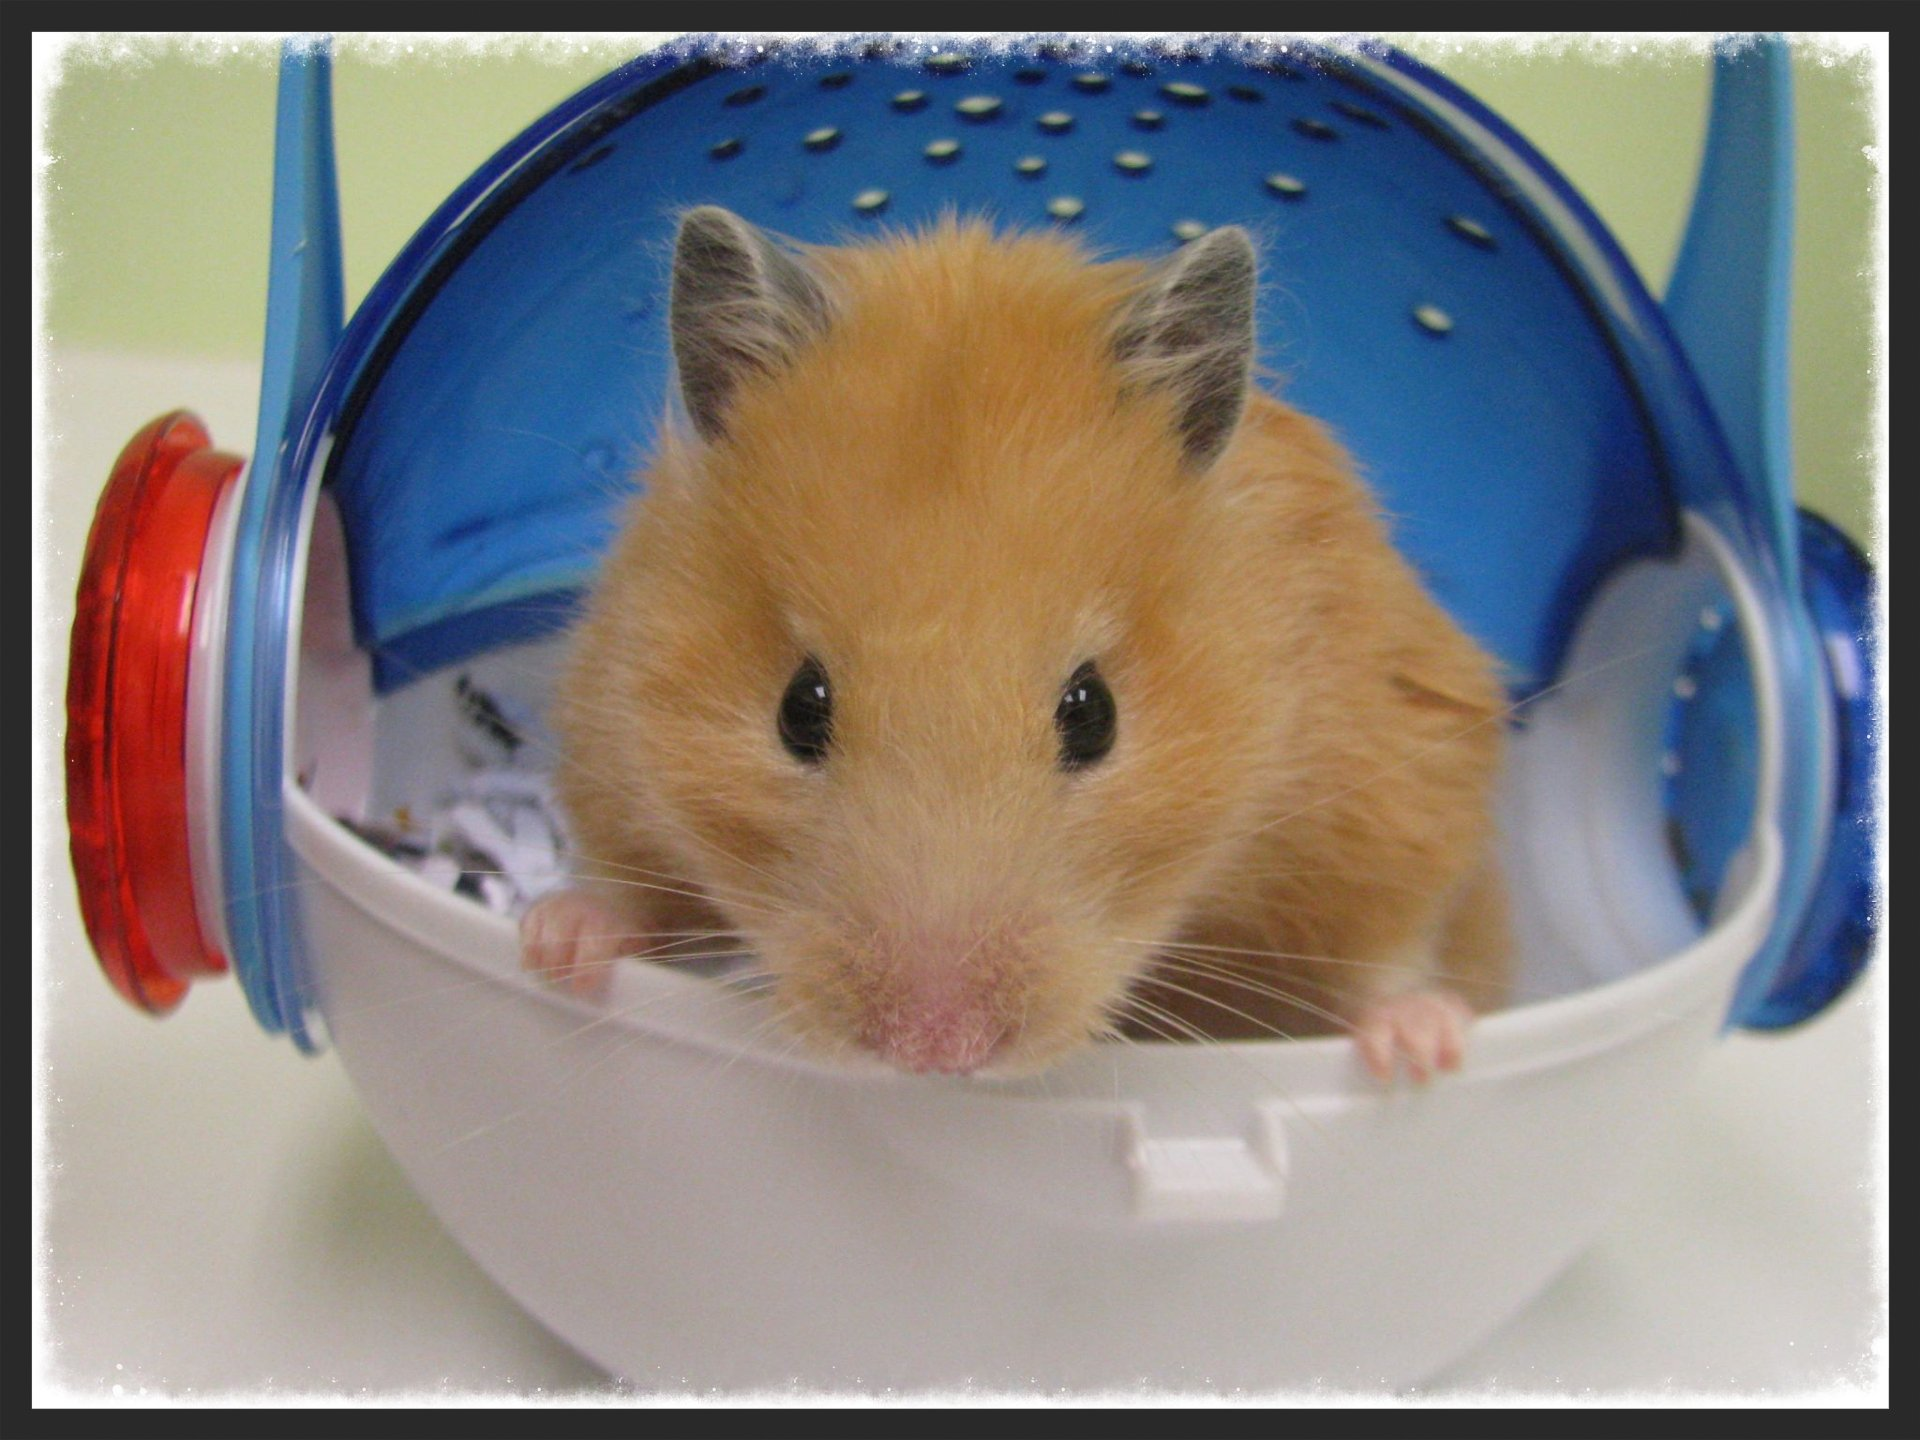 Syrian hamster in carrier